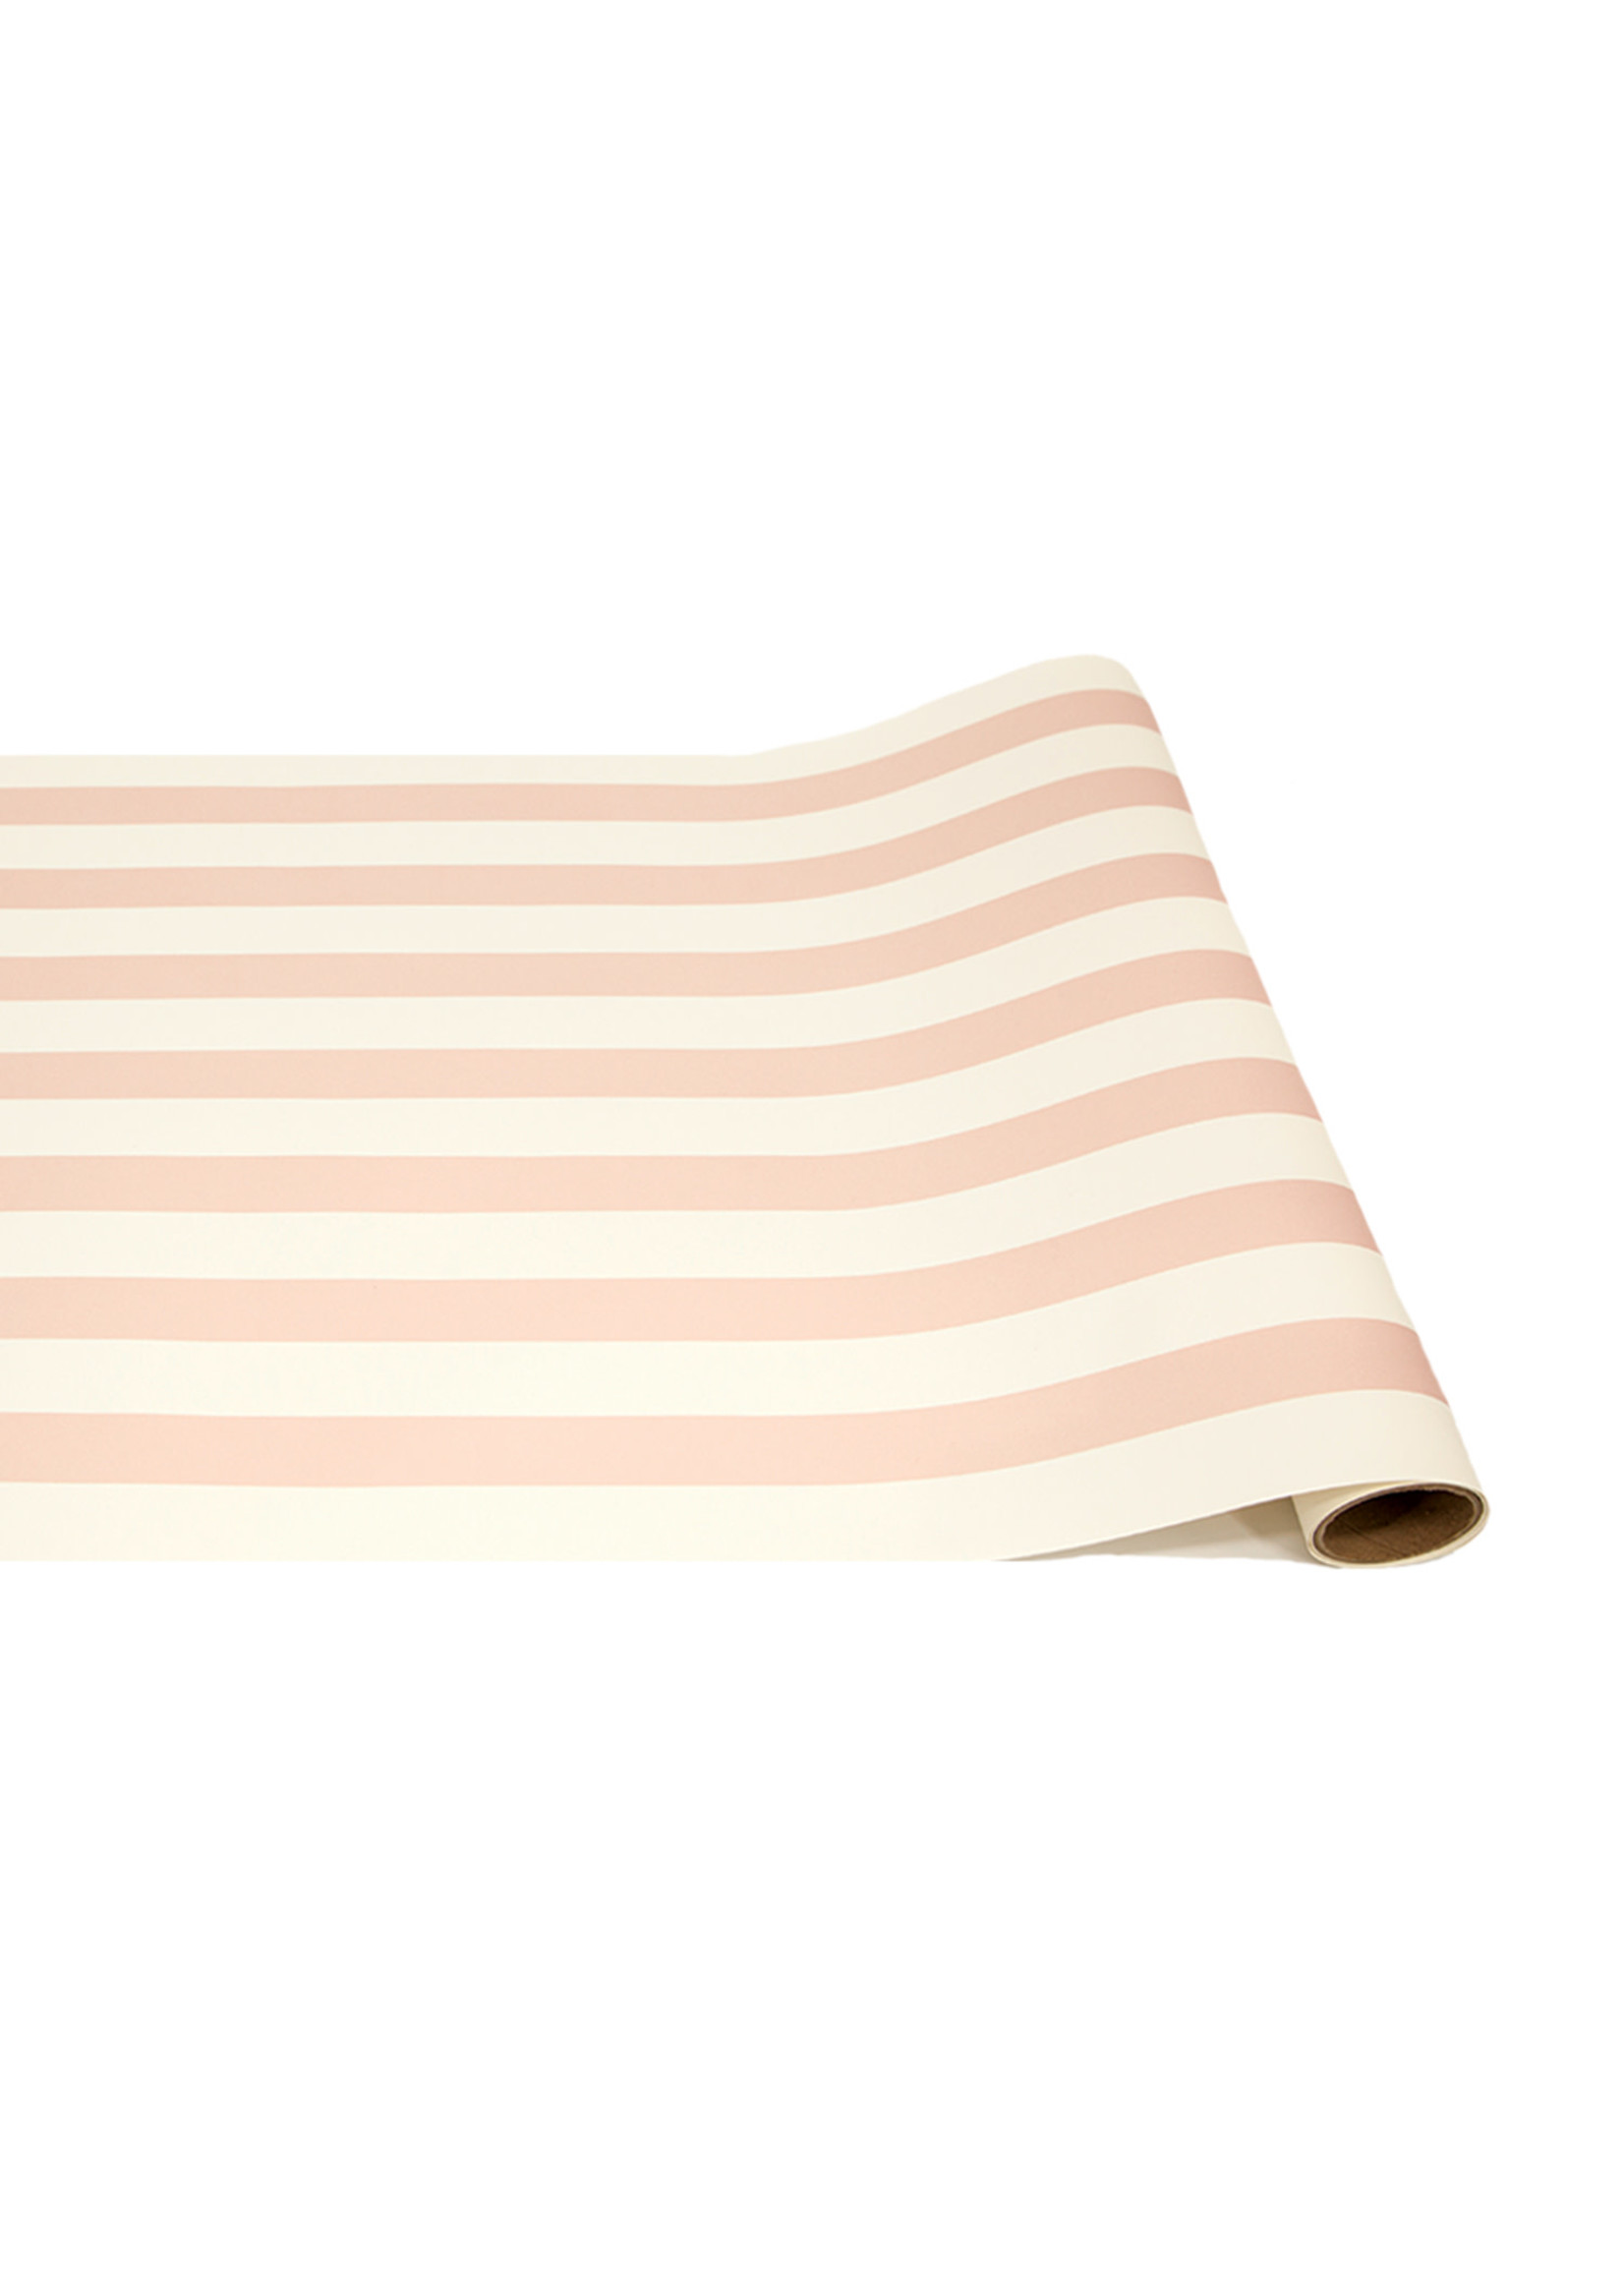 Hester & Cook Paper Runner - Classic Stripe Pink